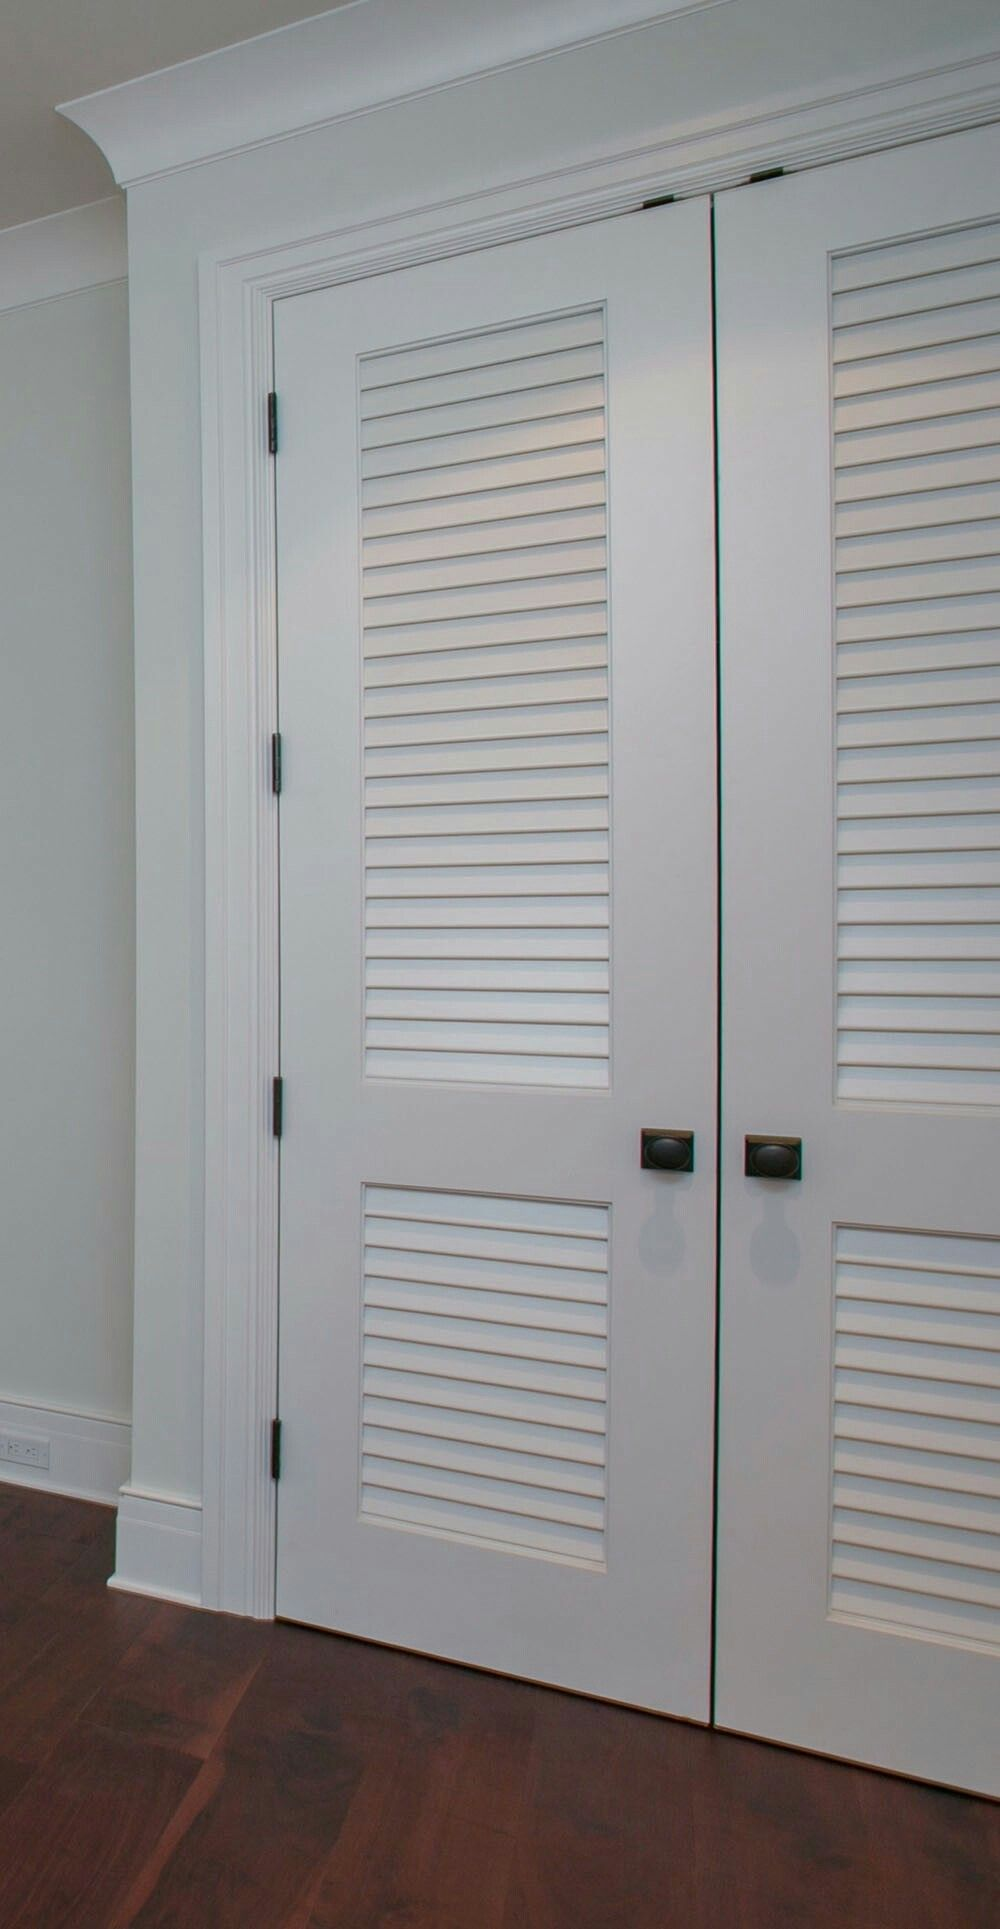 Basement Louvered Door Ventilation From Playroom To